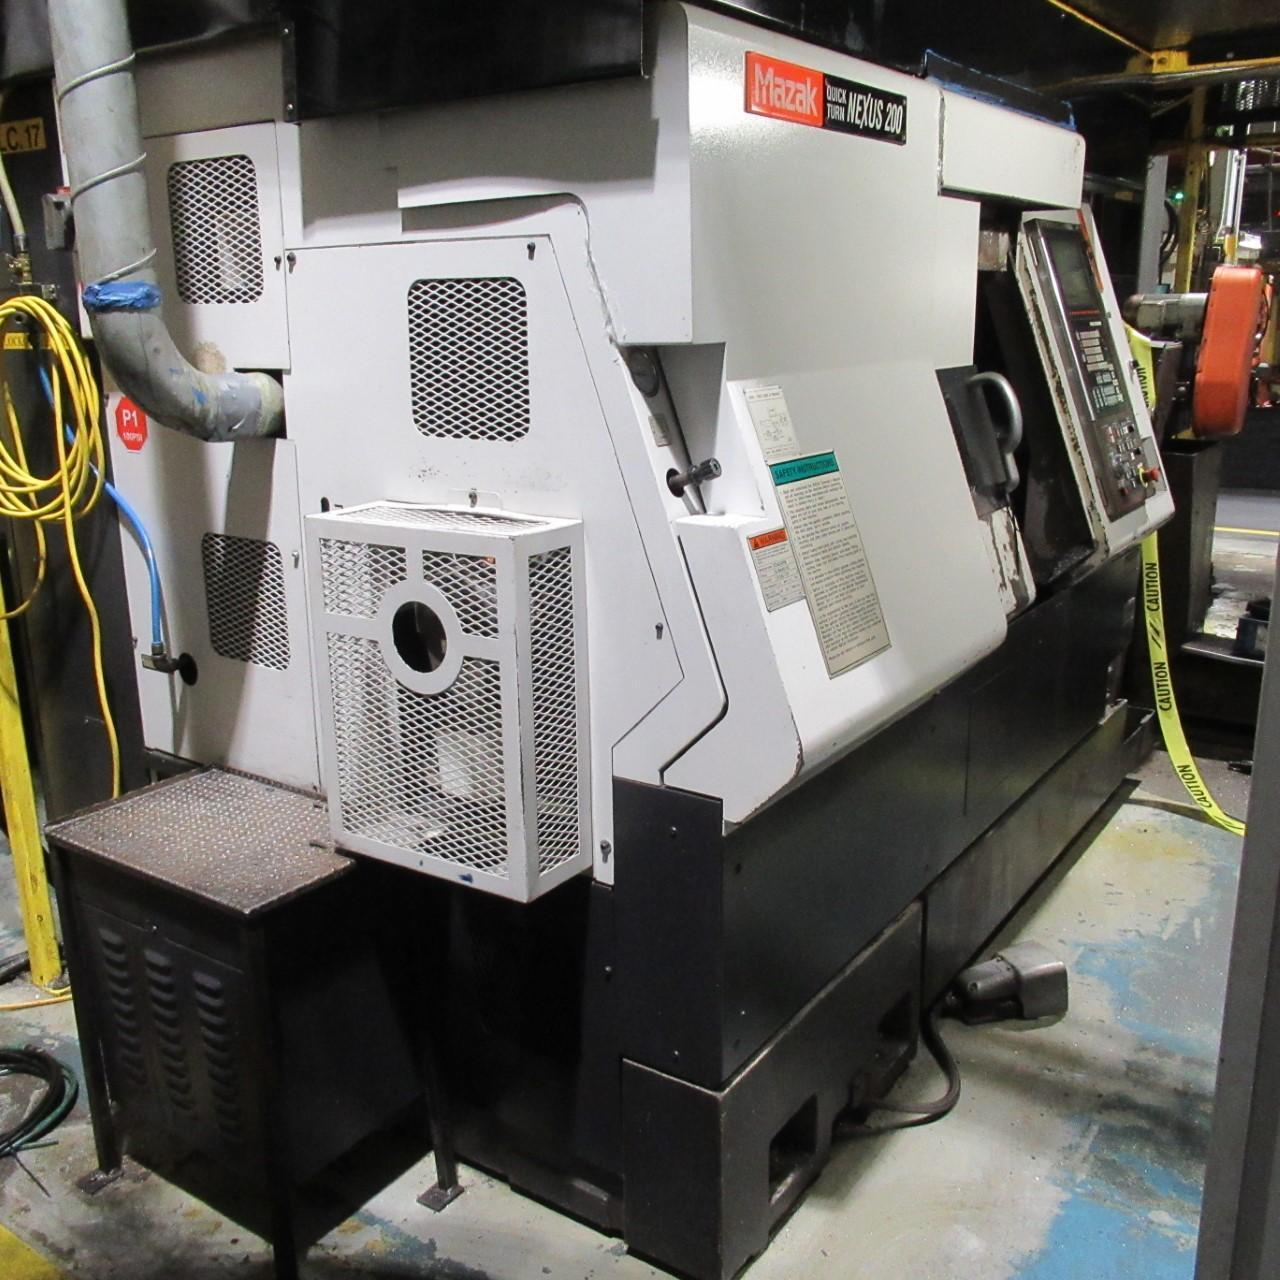 Mazak QTN-200 Turning Center (Cutting only Aluminum)